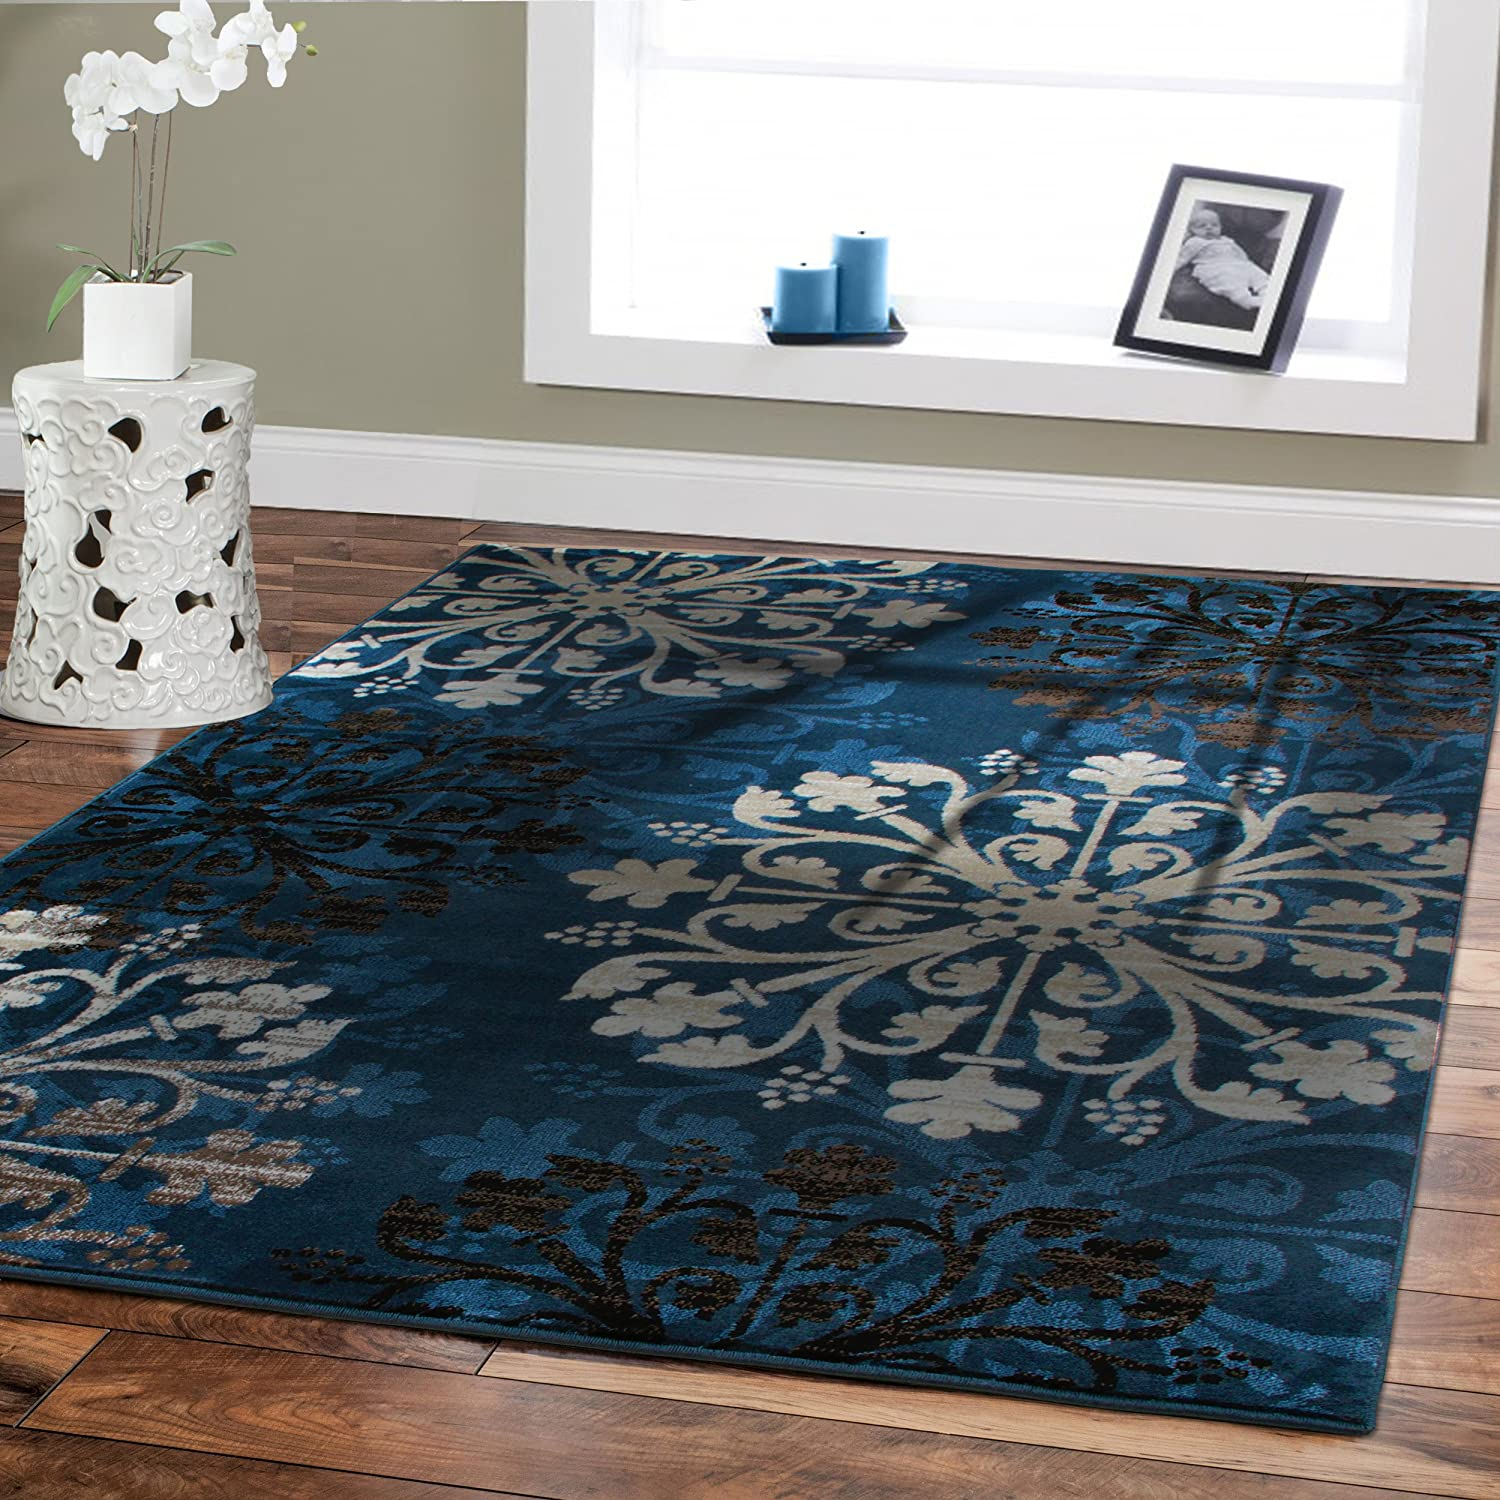 Amazoncom Premium Large 8x11 Luxury Modern Rugs For Dining Rooms Blue Beige Brown CreamFloral Rug Soft Bedrooms And Room Carpet 8 By 10